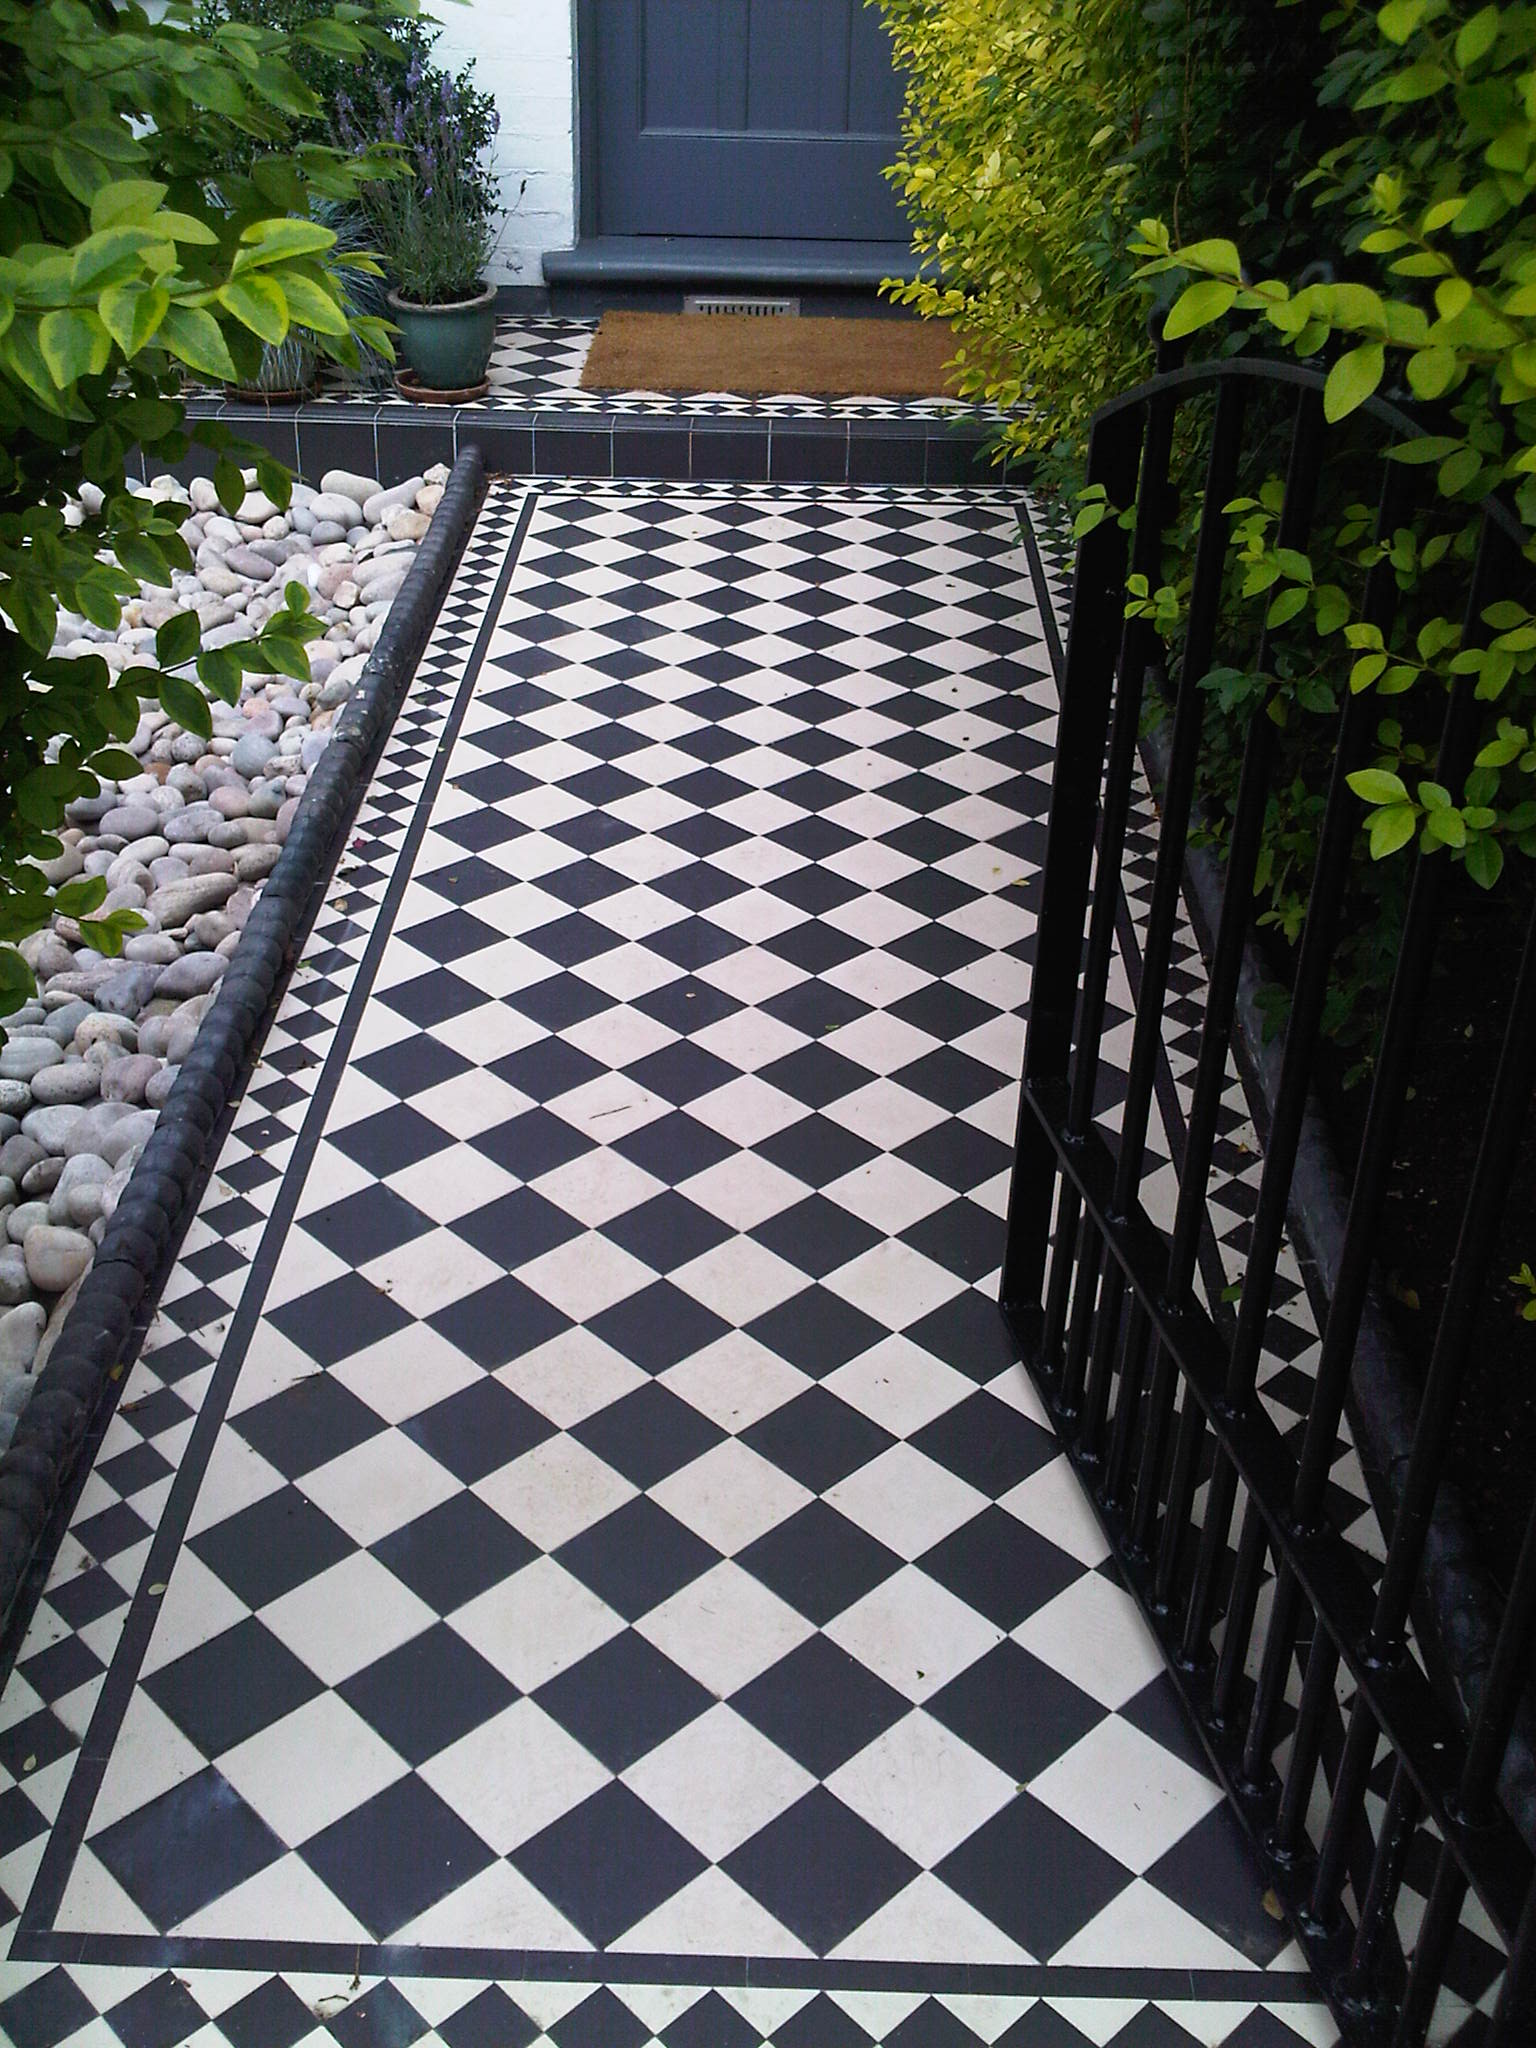 Decorative Garden Tiles